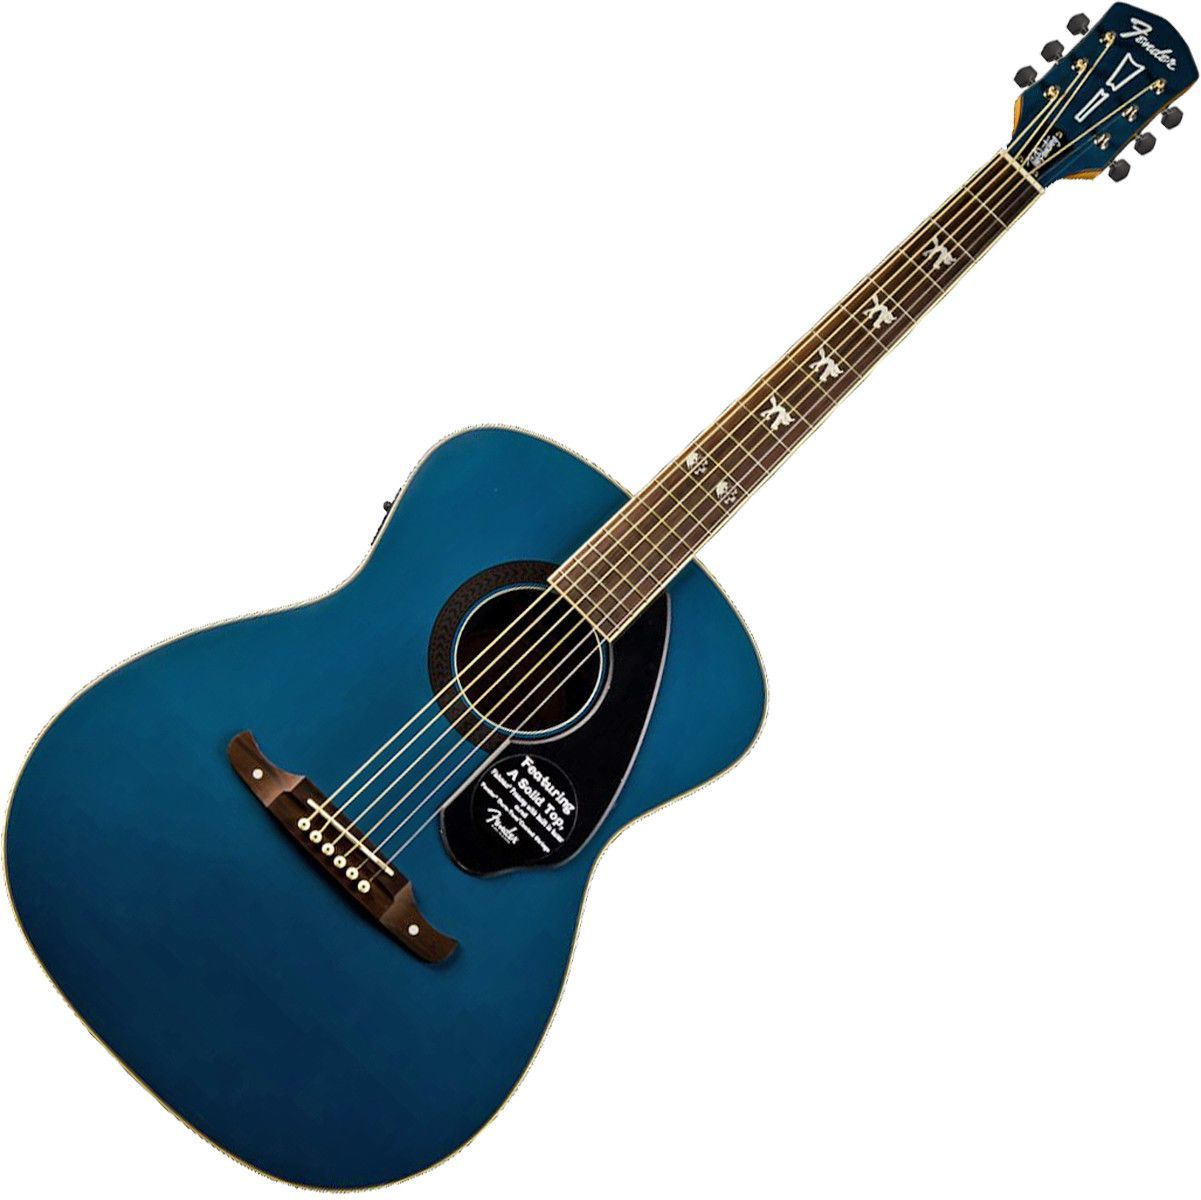 Fender 0971752027 Tim Armstrong Hellcat Sapphire Acoustic Guitar Guitar Classic Guitar Acoustic Guitar